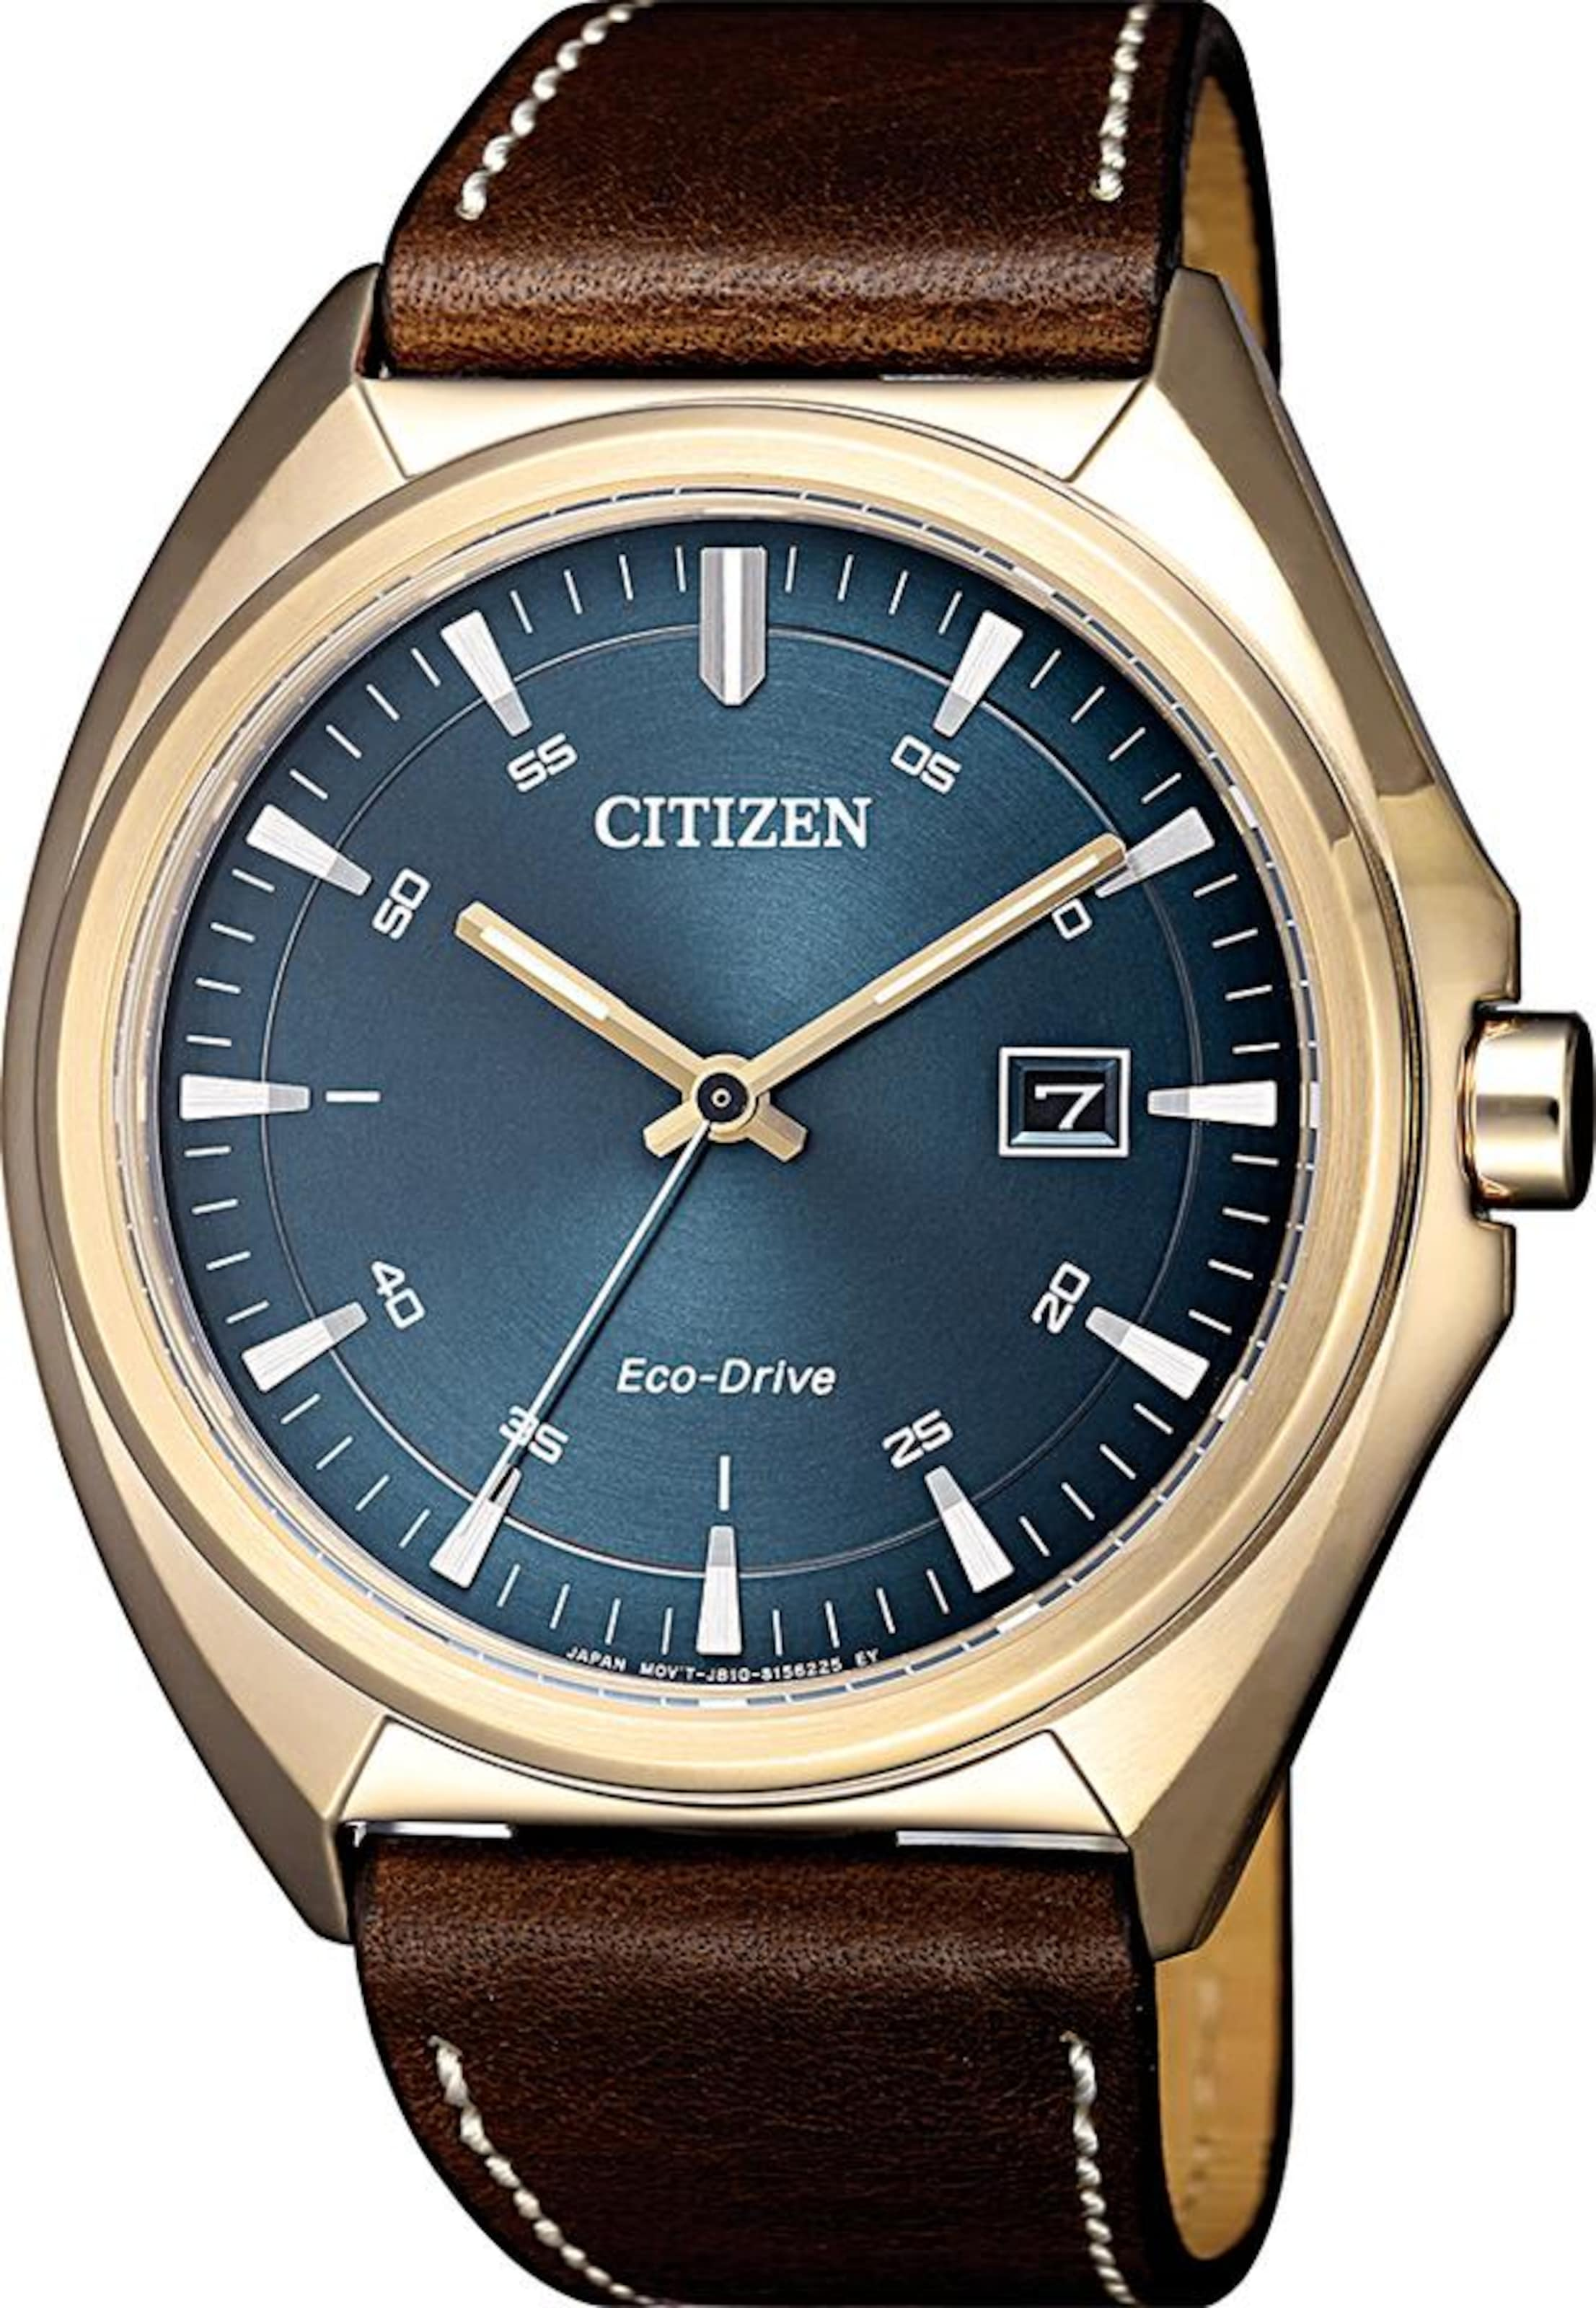 11l' 'aw1573 Citizen Solaruhr In BlauBraun Gold Pnk8wON0XZ